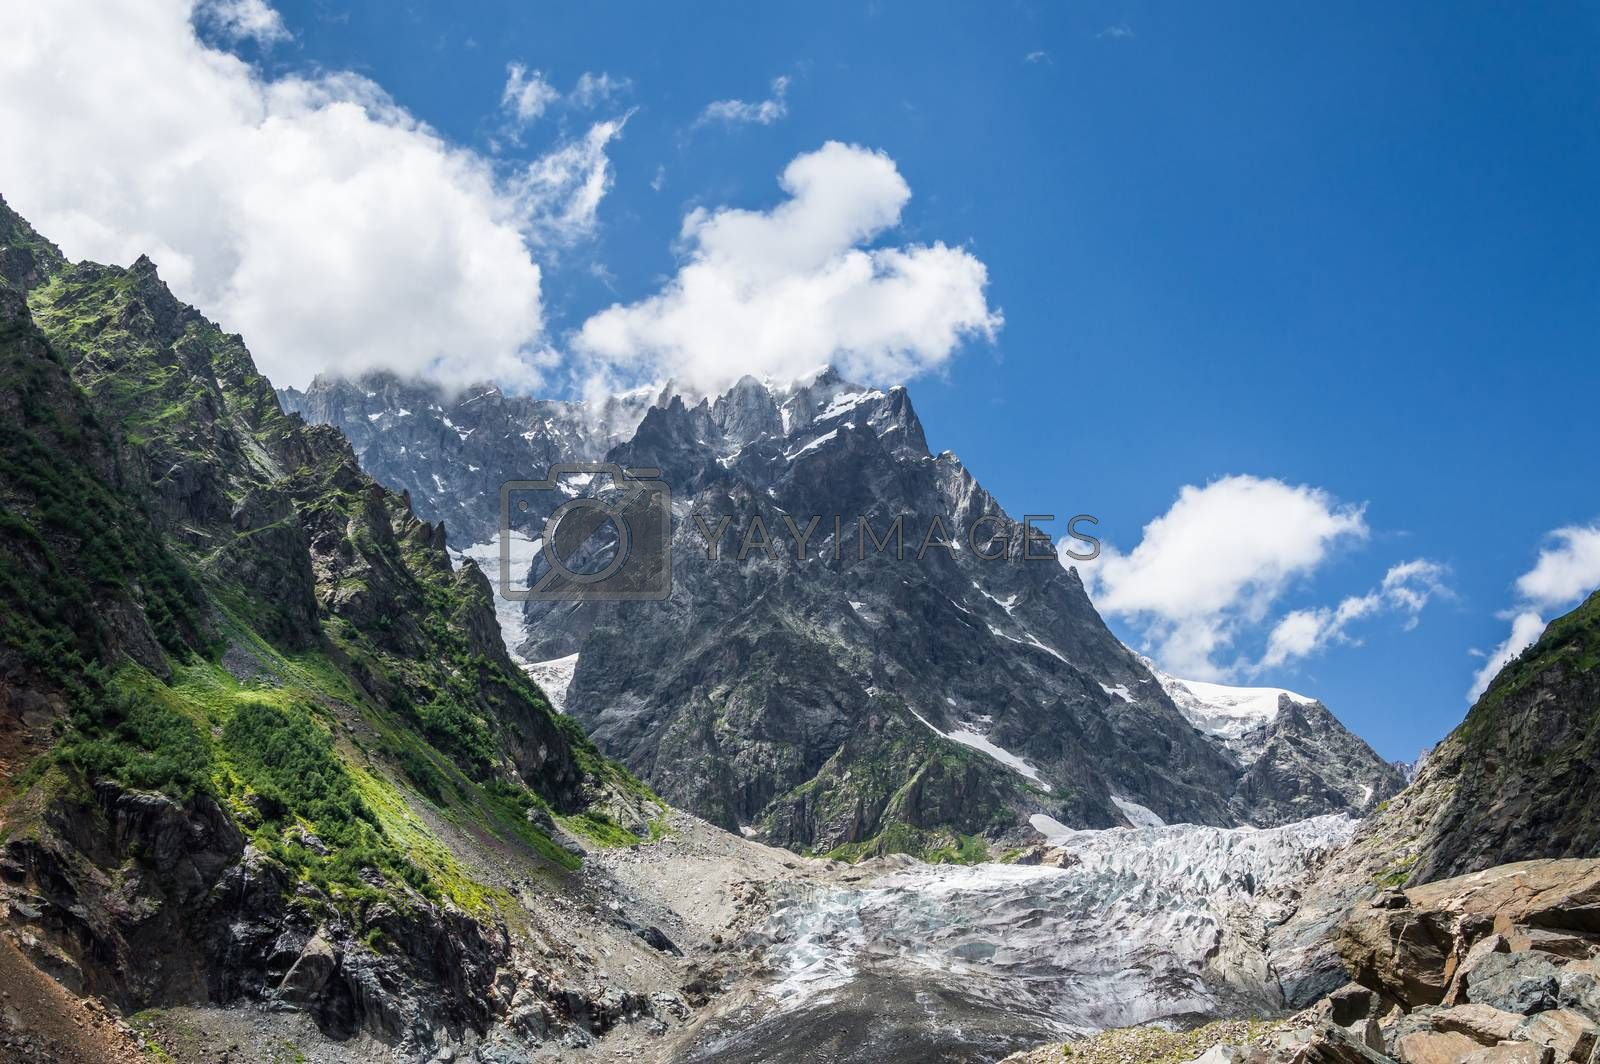 Royalty free image of Glacier in mountain by firewings